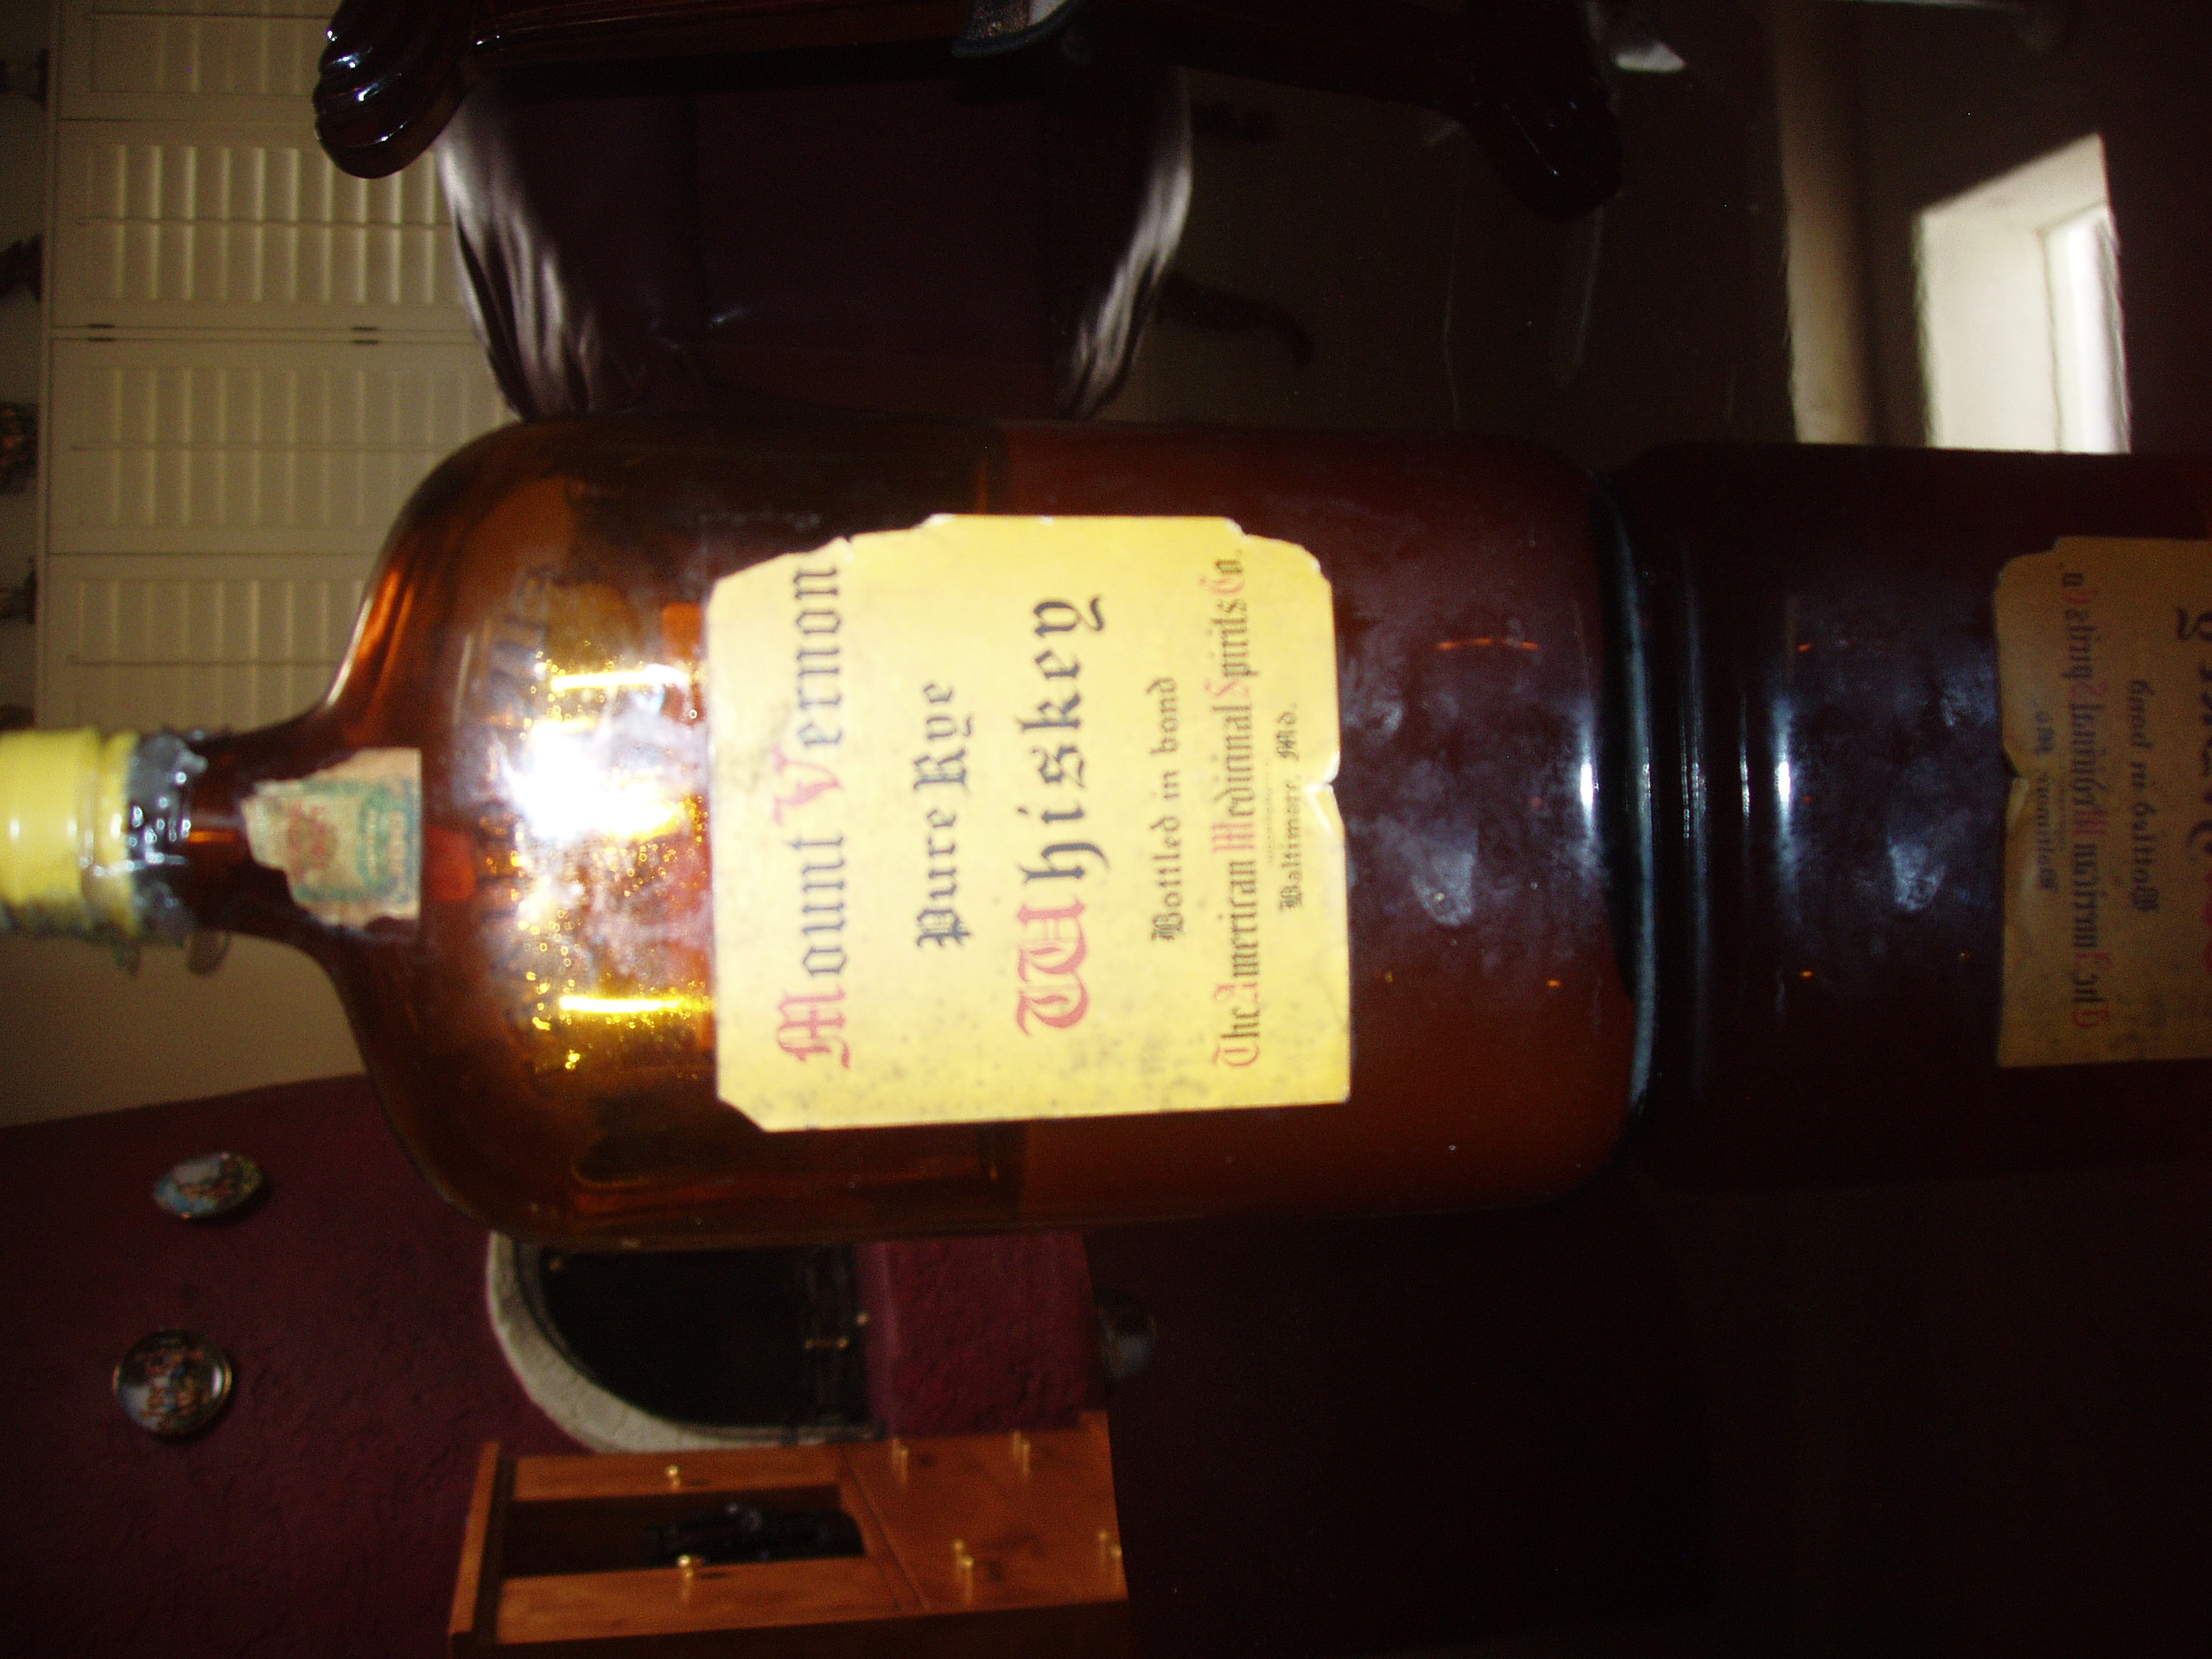 whiskey bottle 021.jpg